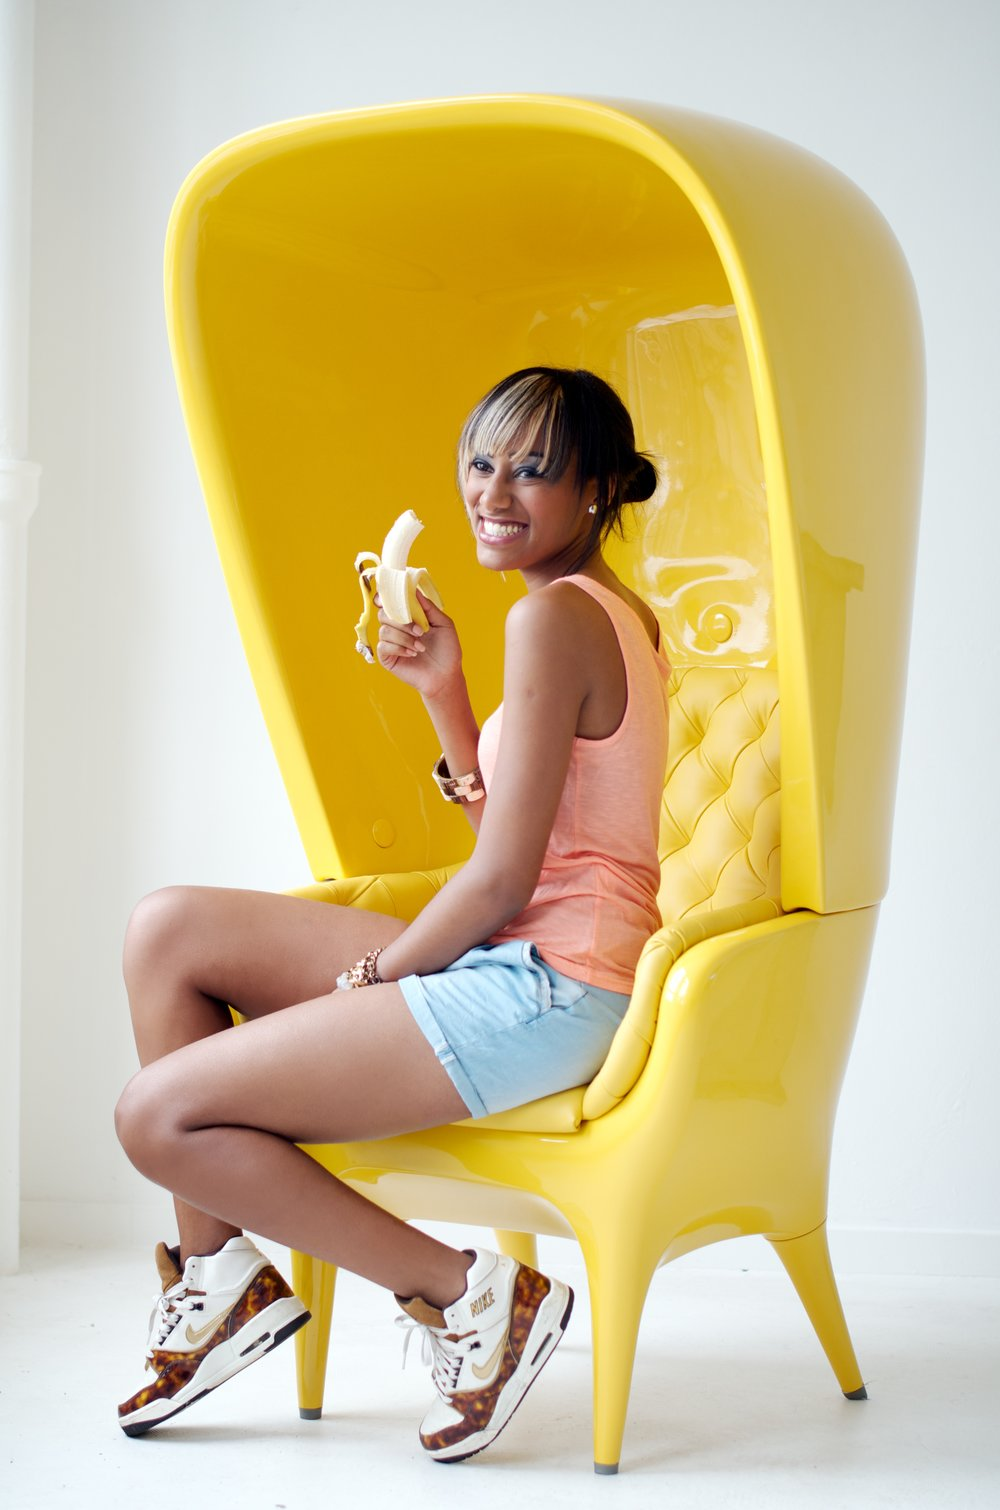 stock-photo-banana-chair-1281506.jpg